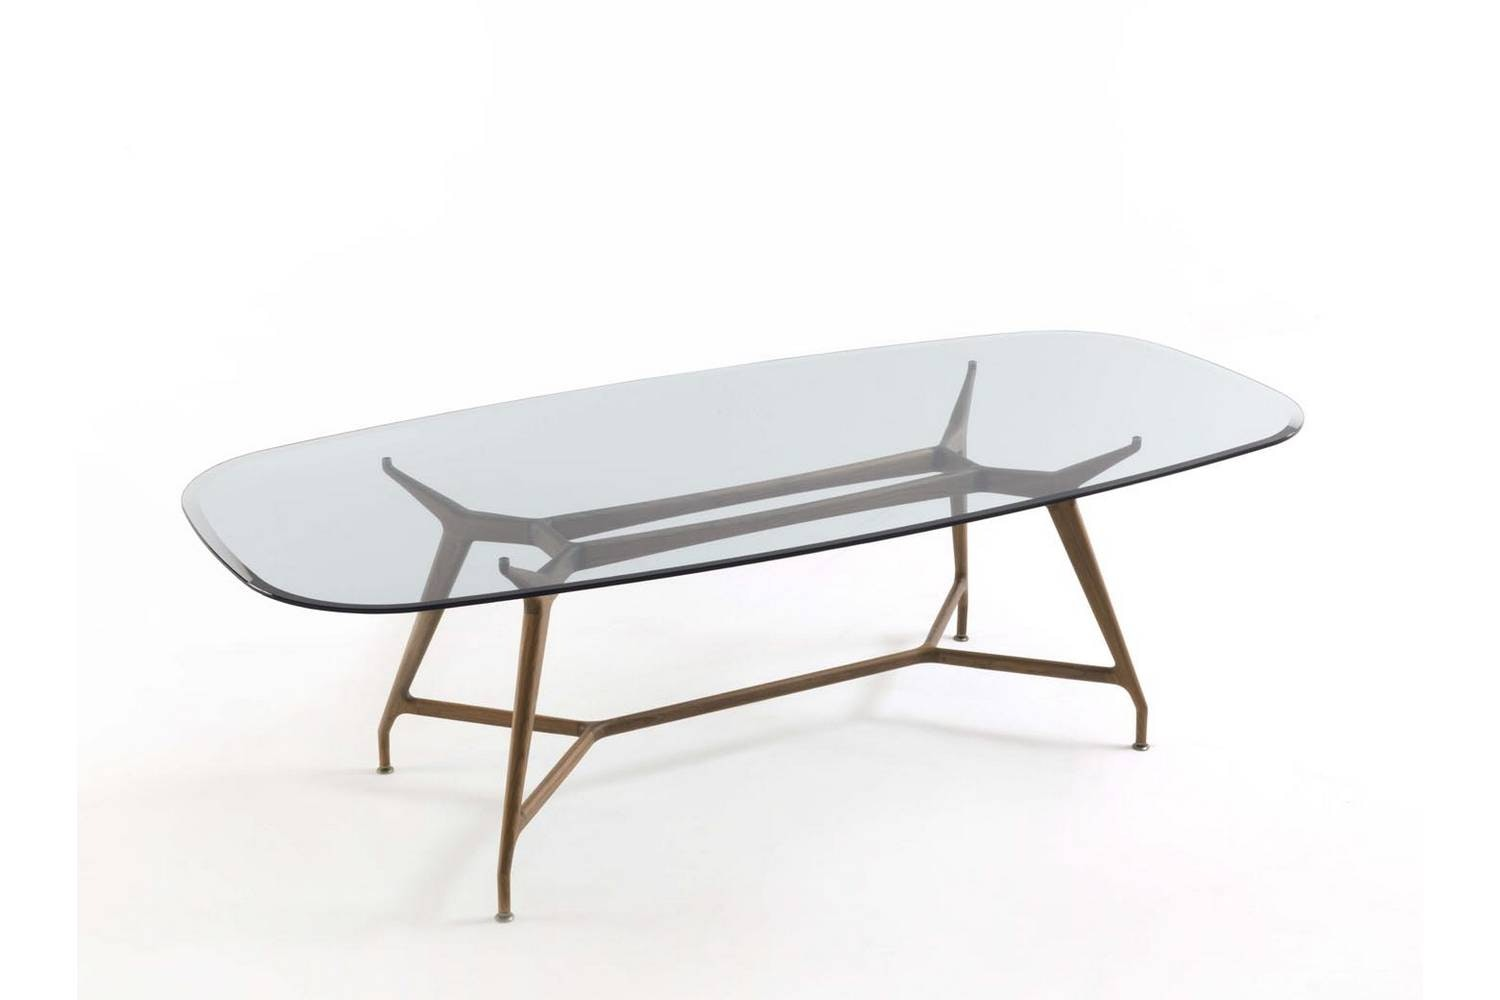 Mirabeau Table by T. Colzani for Porada